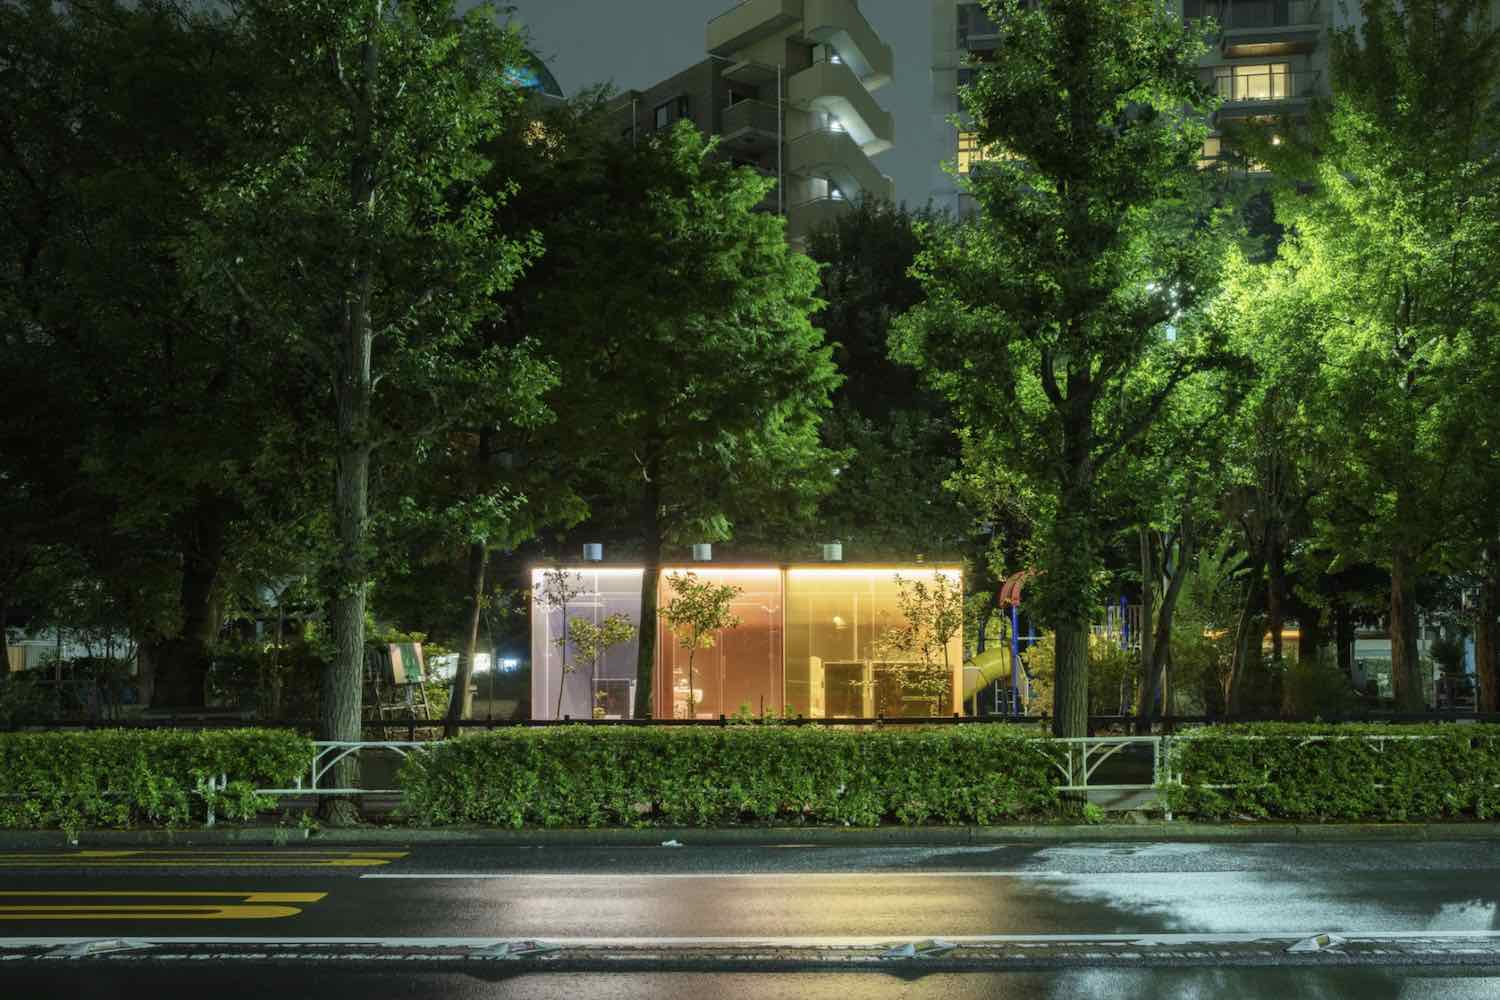 Transparent Public Toiltes by Shigeru Ban in Sibuya, Tokyo - Photo by Satoshi Nagare, courtesy of The Nippon Foundation.